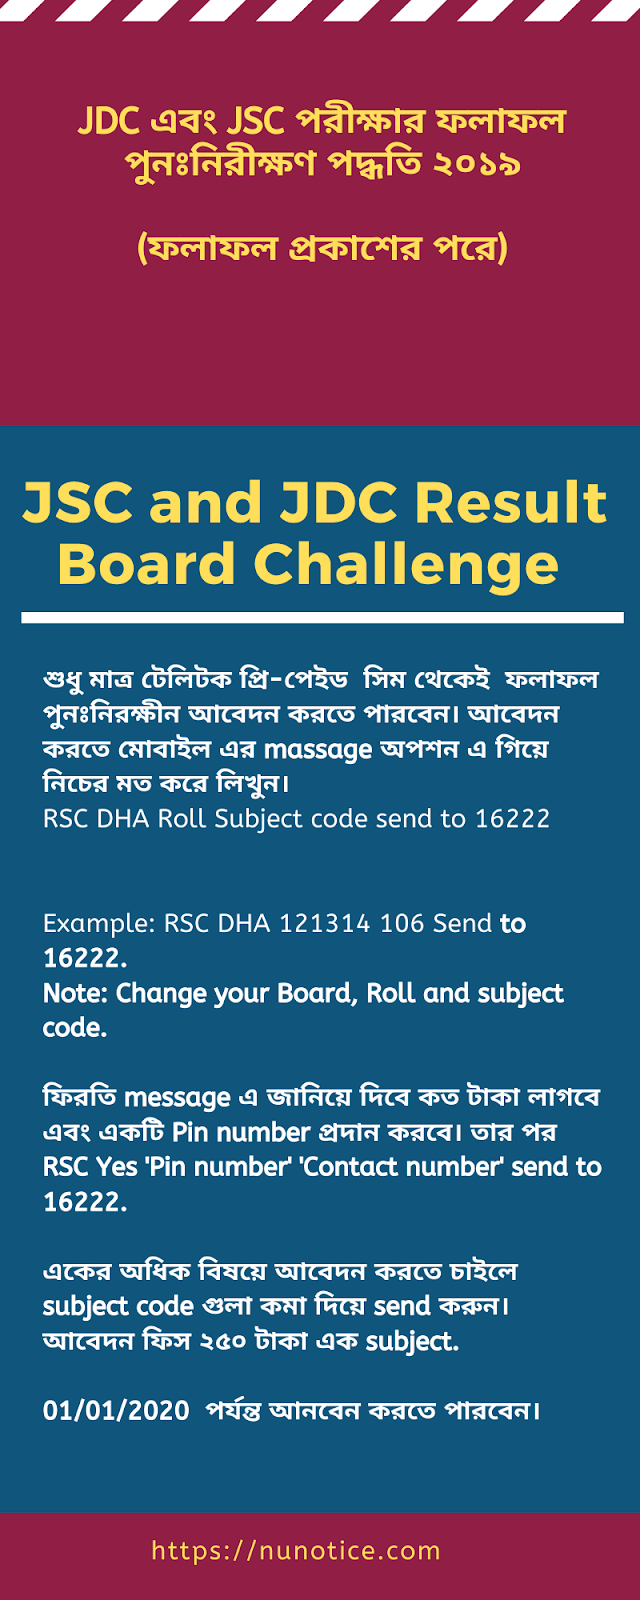 JDC result Board challenge infographic